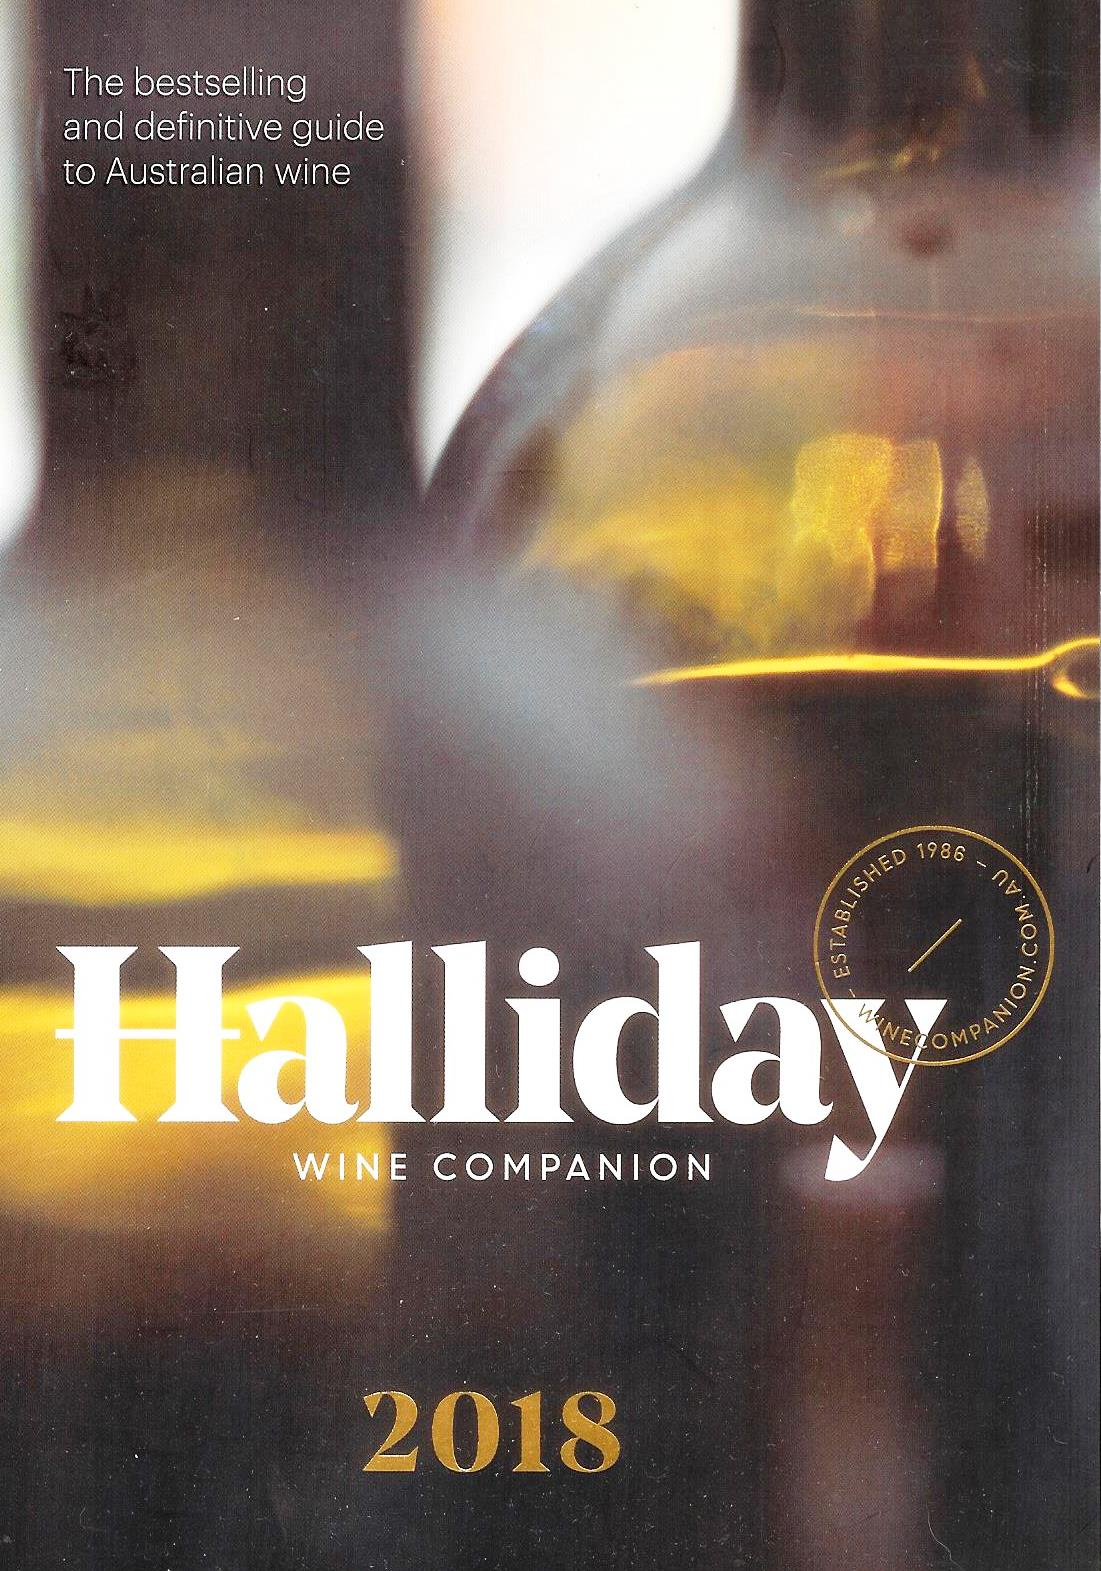 halliday wine companion 2018 grampians estate